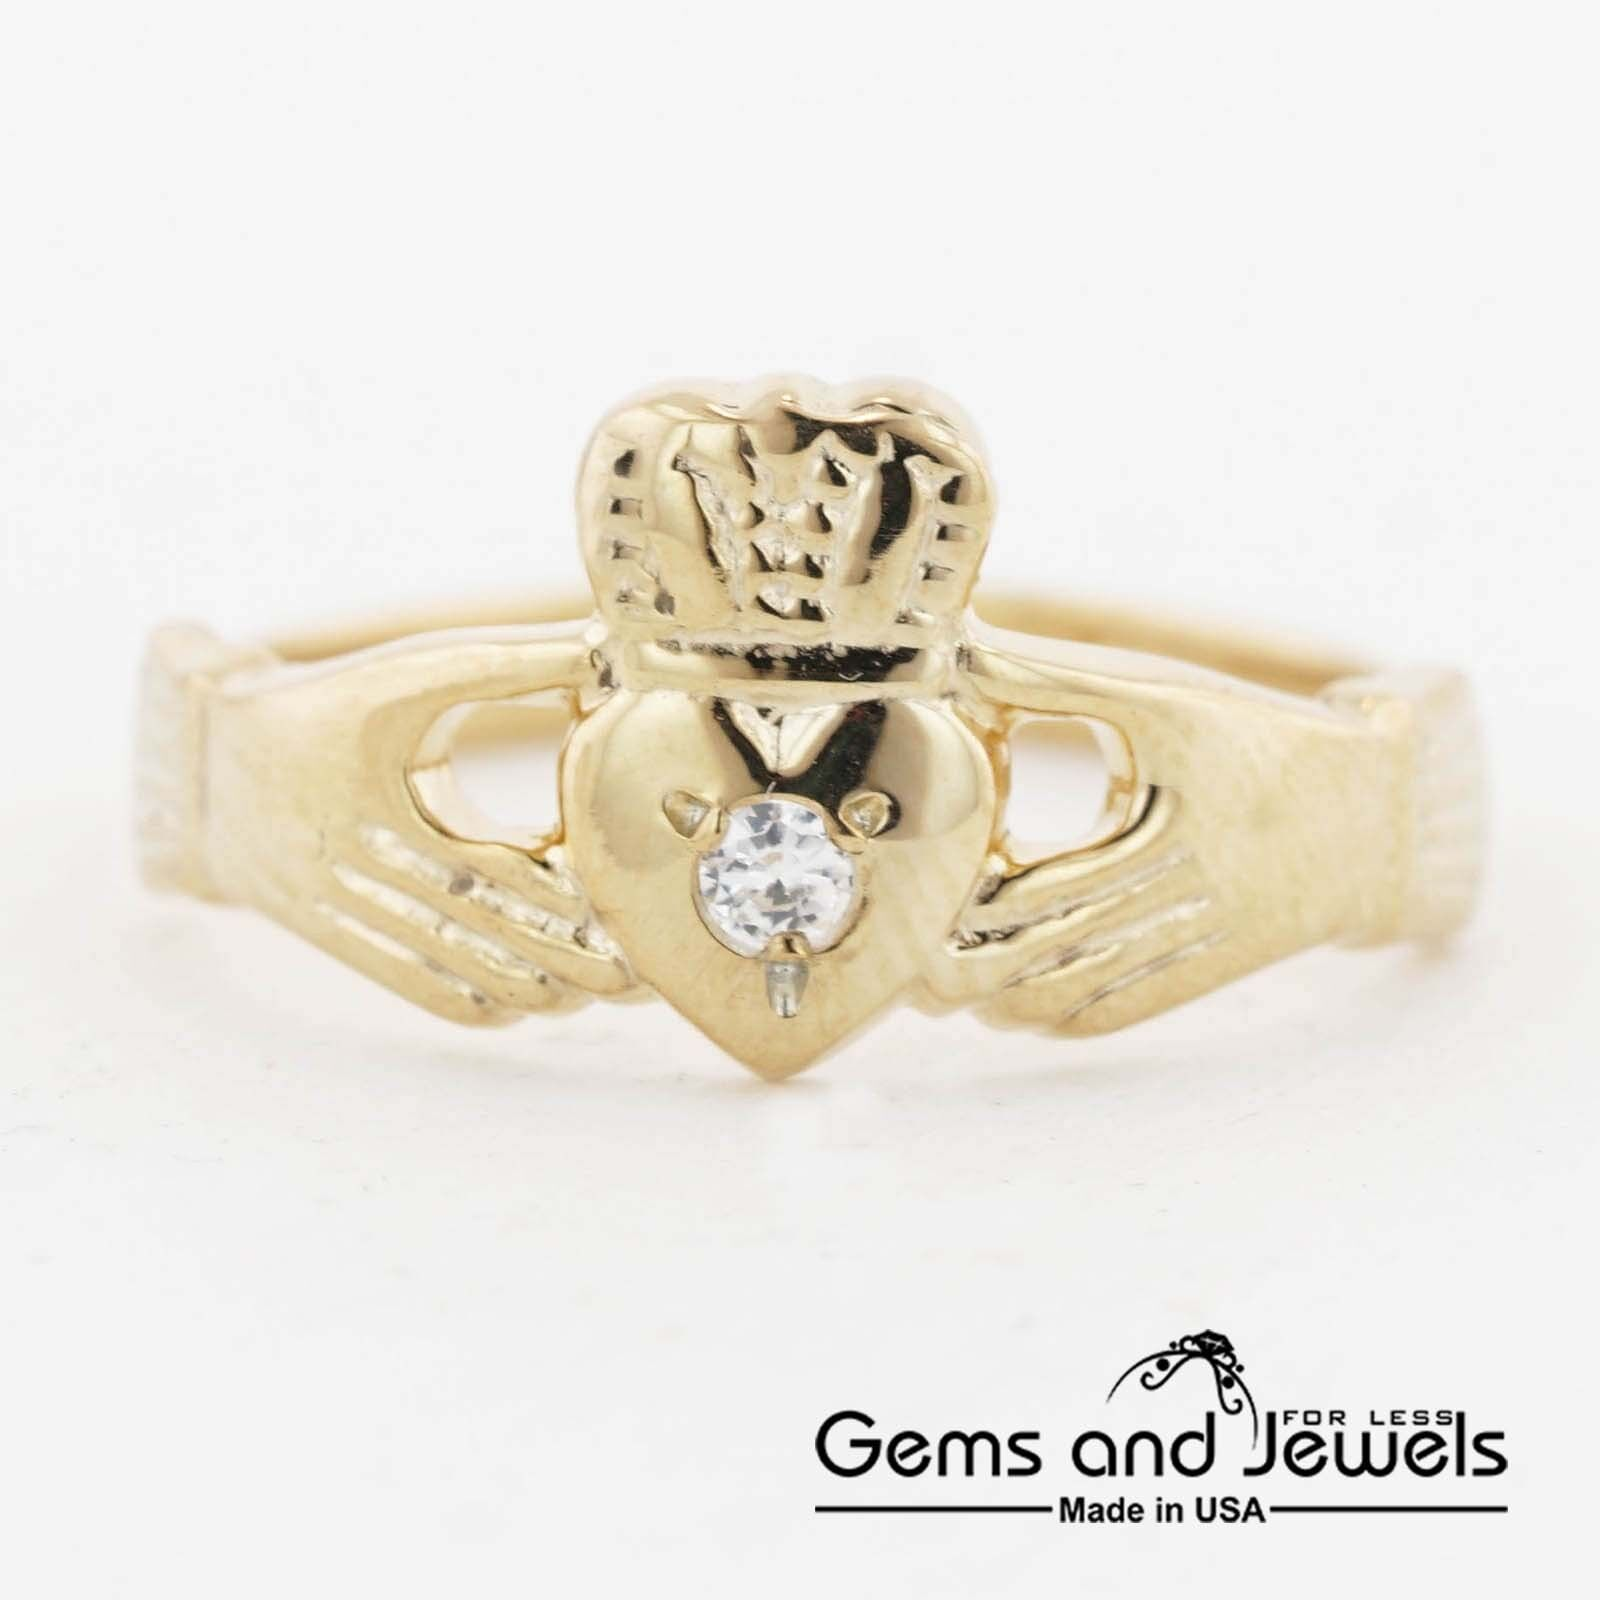 1286 Claddagh Ring in Solid 14K Yellow gold Women's Ring  139